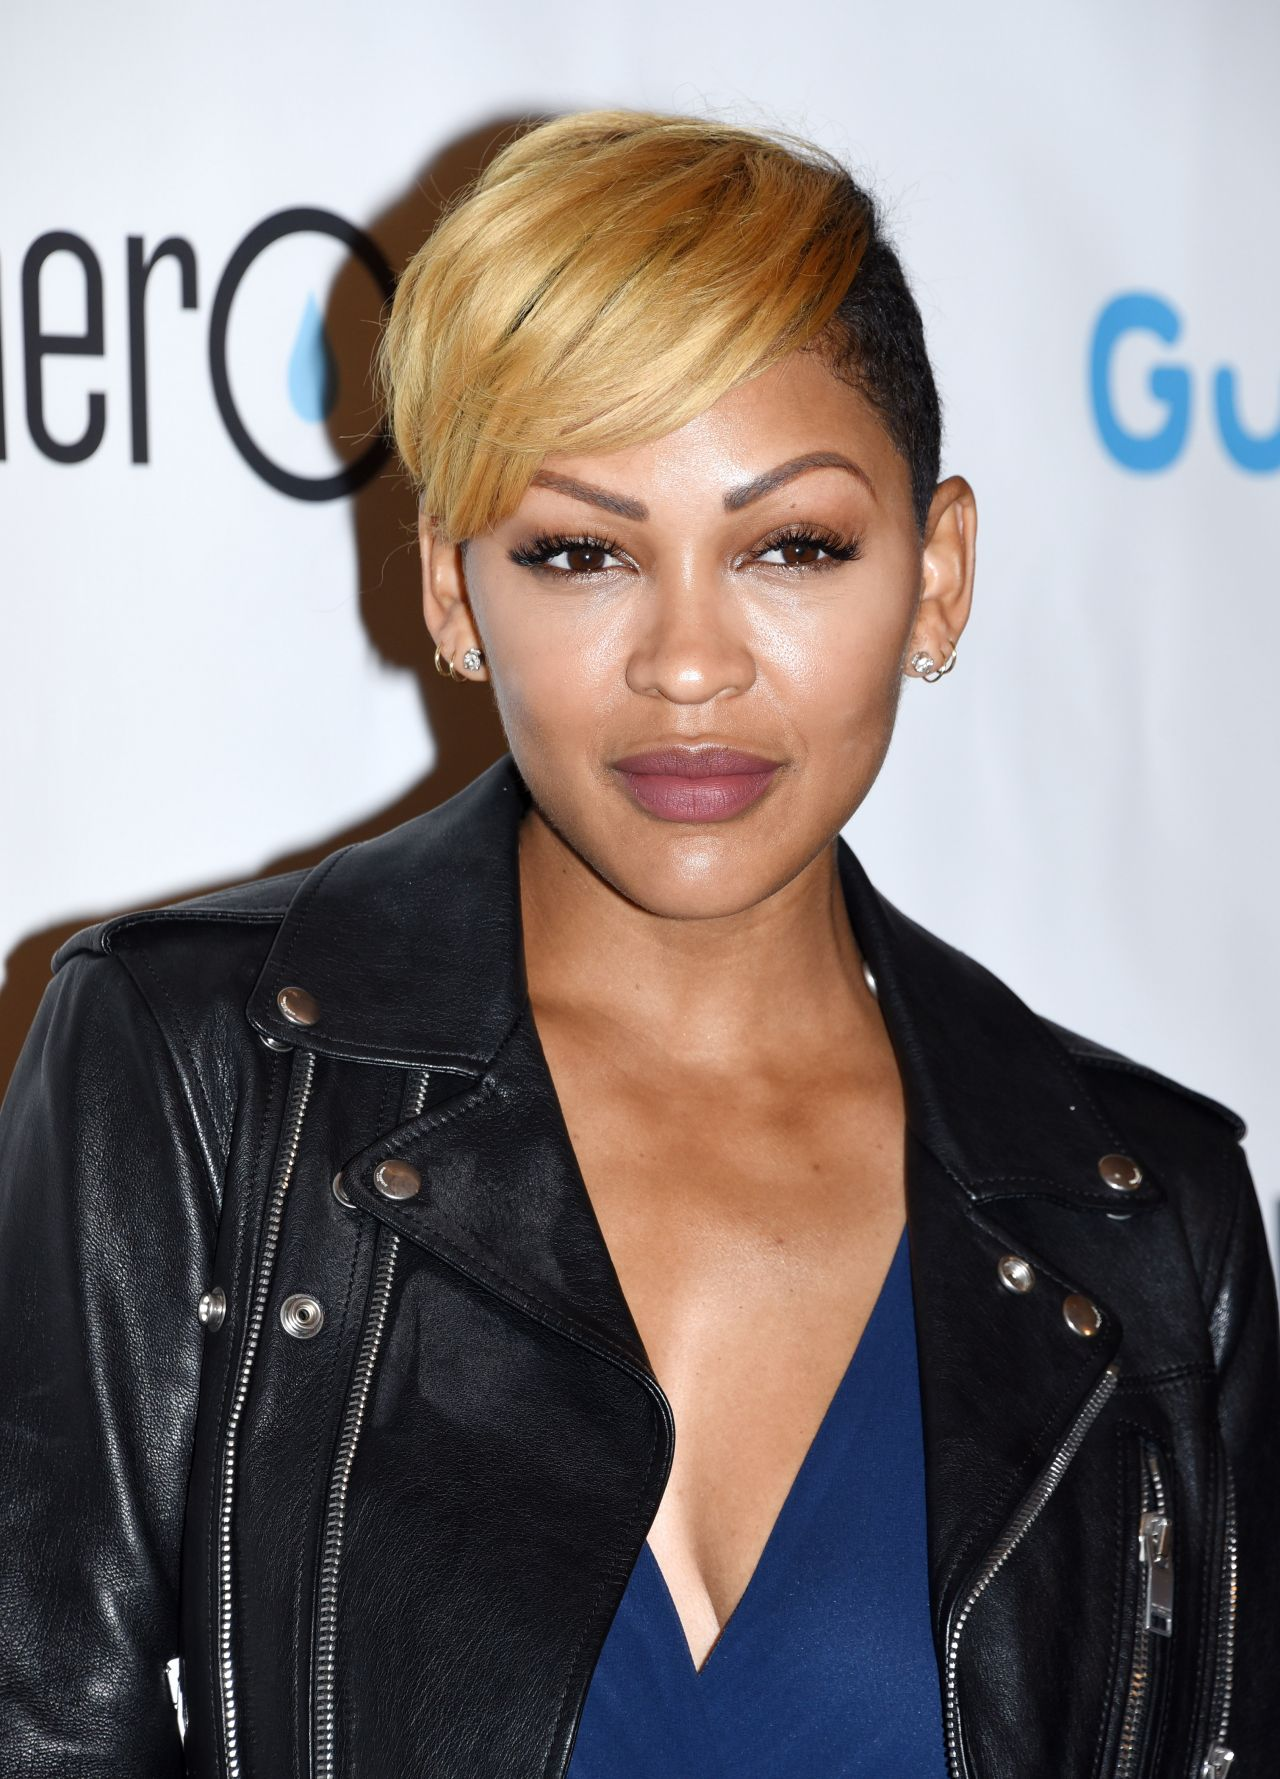 Meagan Good Short Hair 2017 - Short Hair Fashions